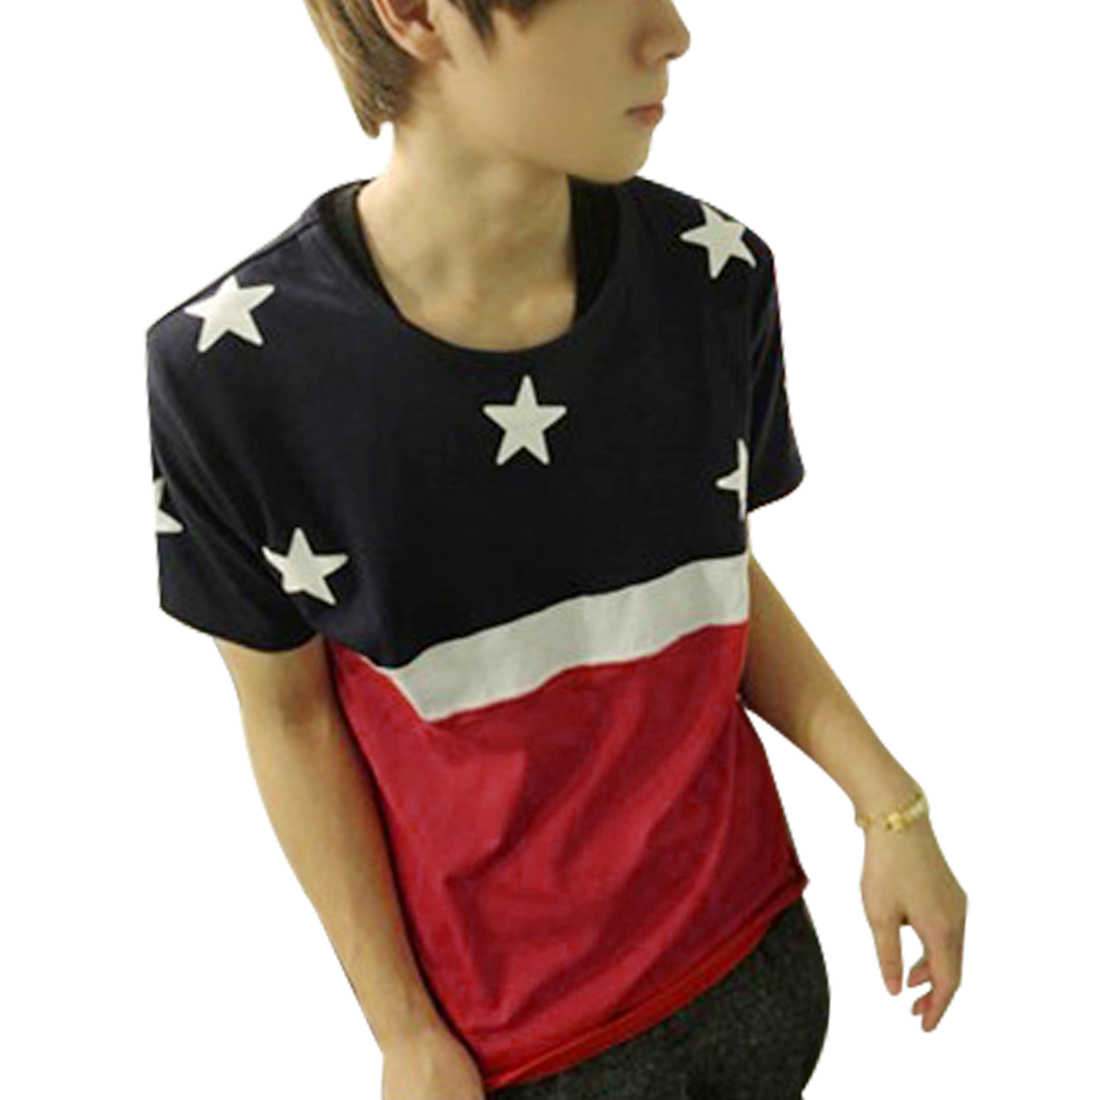 Man Short Sleeves Red White Navy Blue Color Block Casual T-Shirt Blouse S